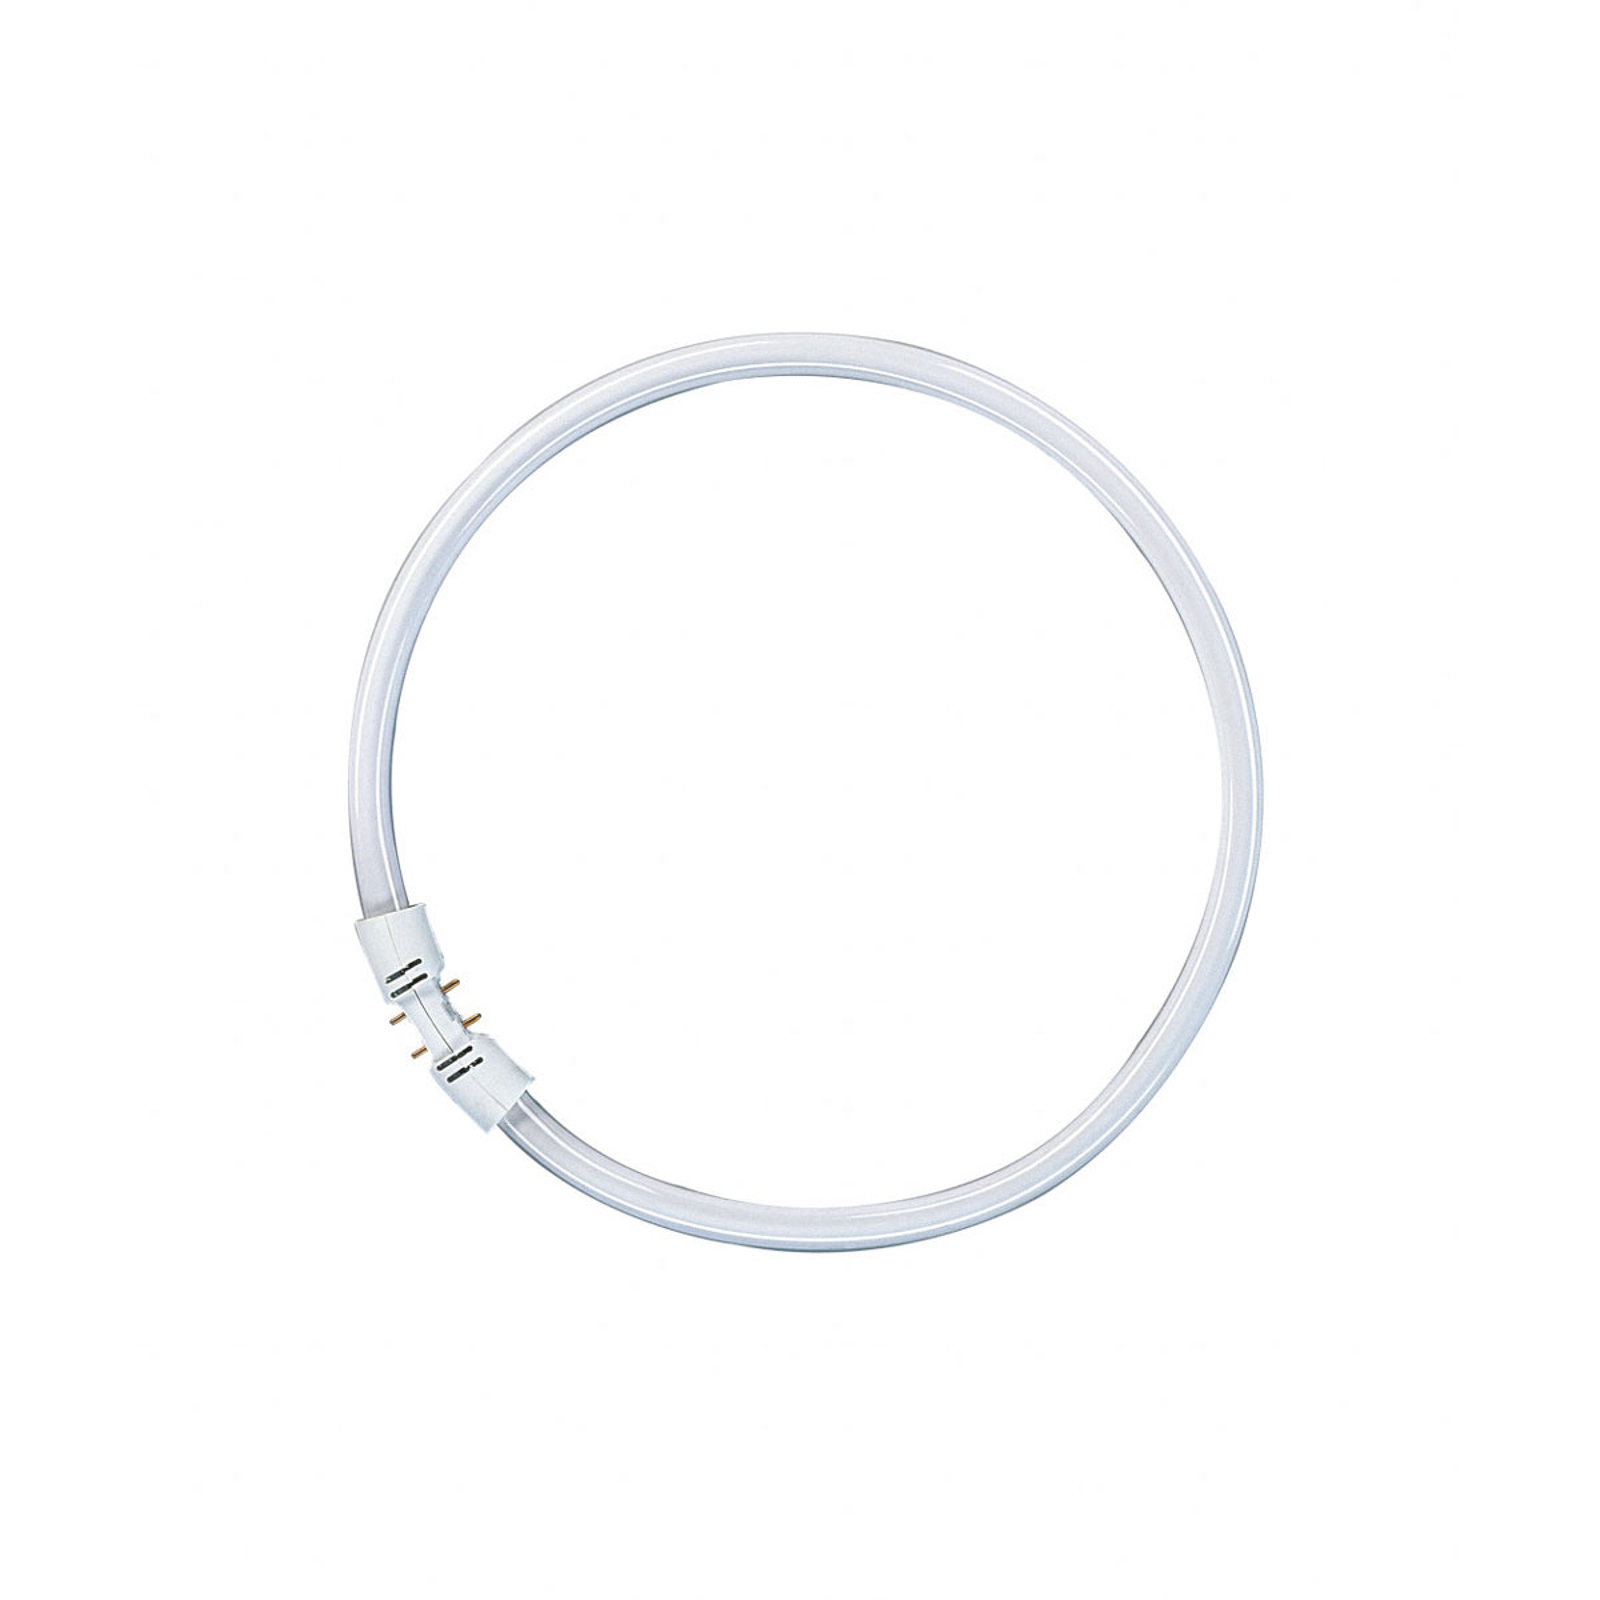 2Gx13 LUMILUX T5 Tube fluo circulaire 22W 827